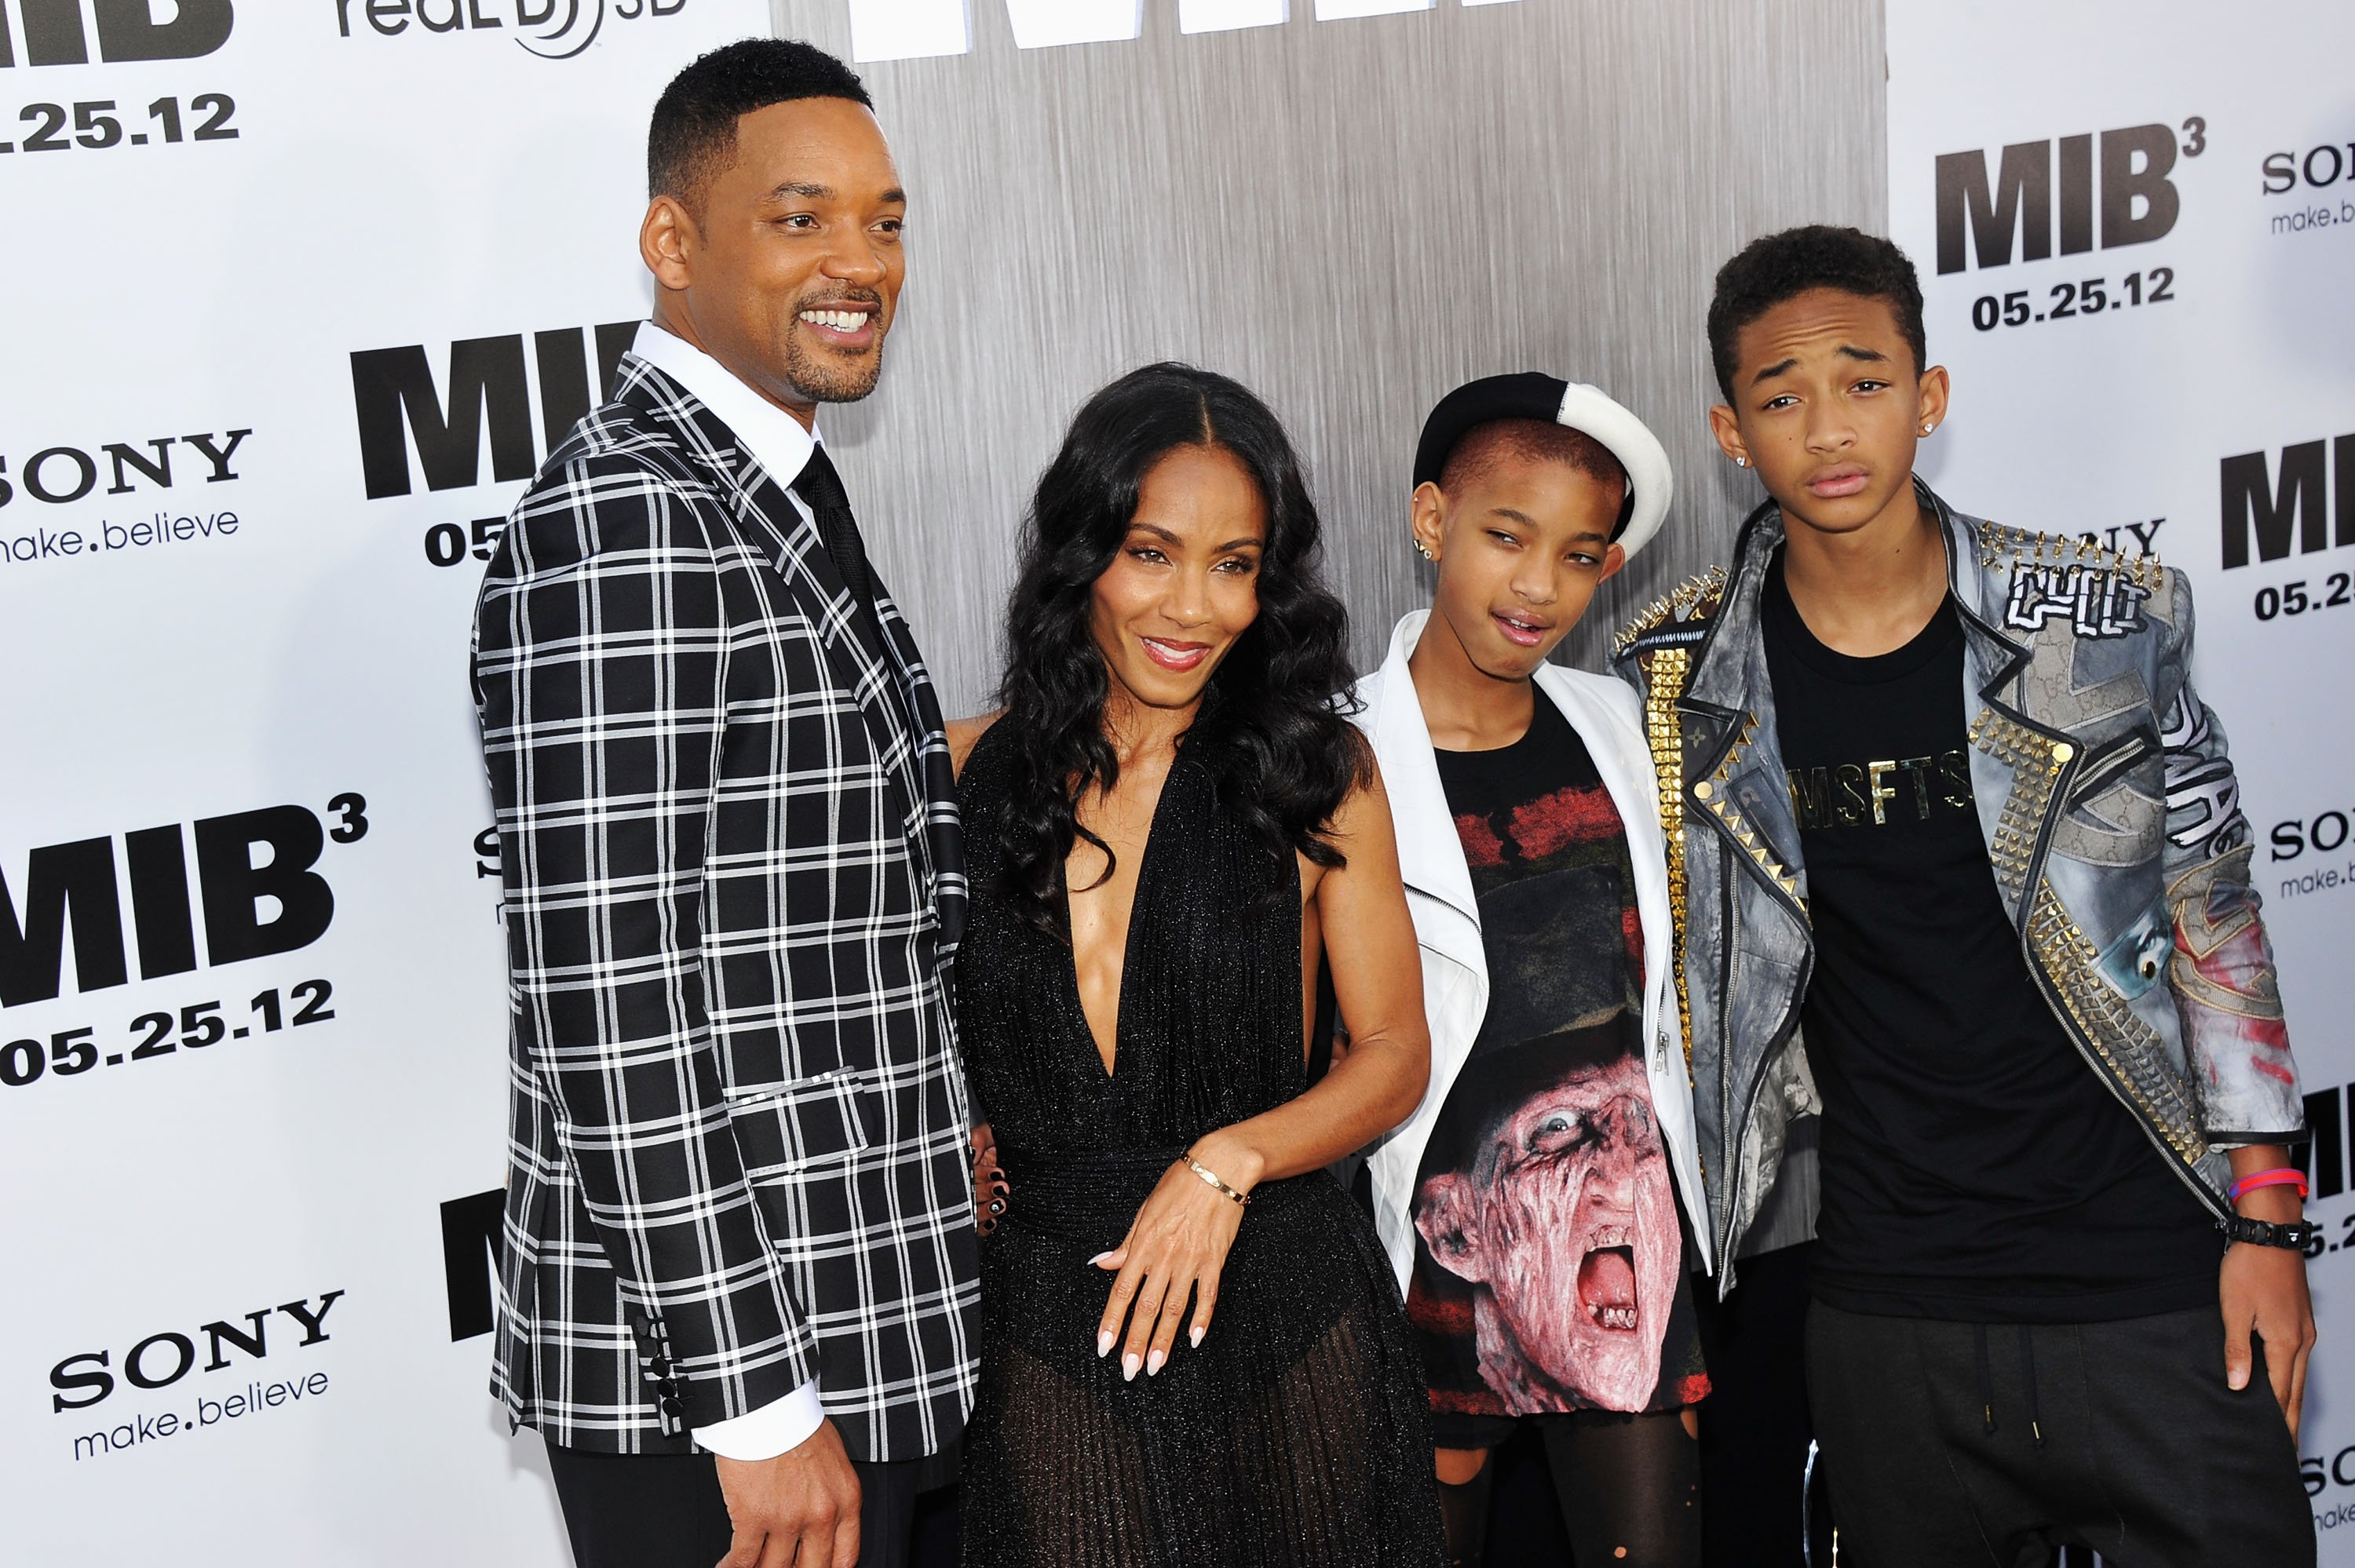 "NEW YORK, NY - MAY 23: Will Smith, Jada Pinkett Smith, Willow Smith and Jaden Smith attend the ""Men In Black 3"" New York Premiere at Ziegfeld Theatre on May 23, 2012 in New York City. (Photo by Theo Wargo/Getty Images)"